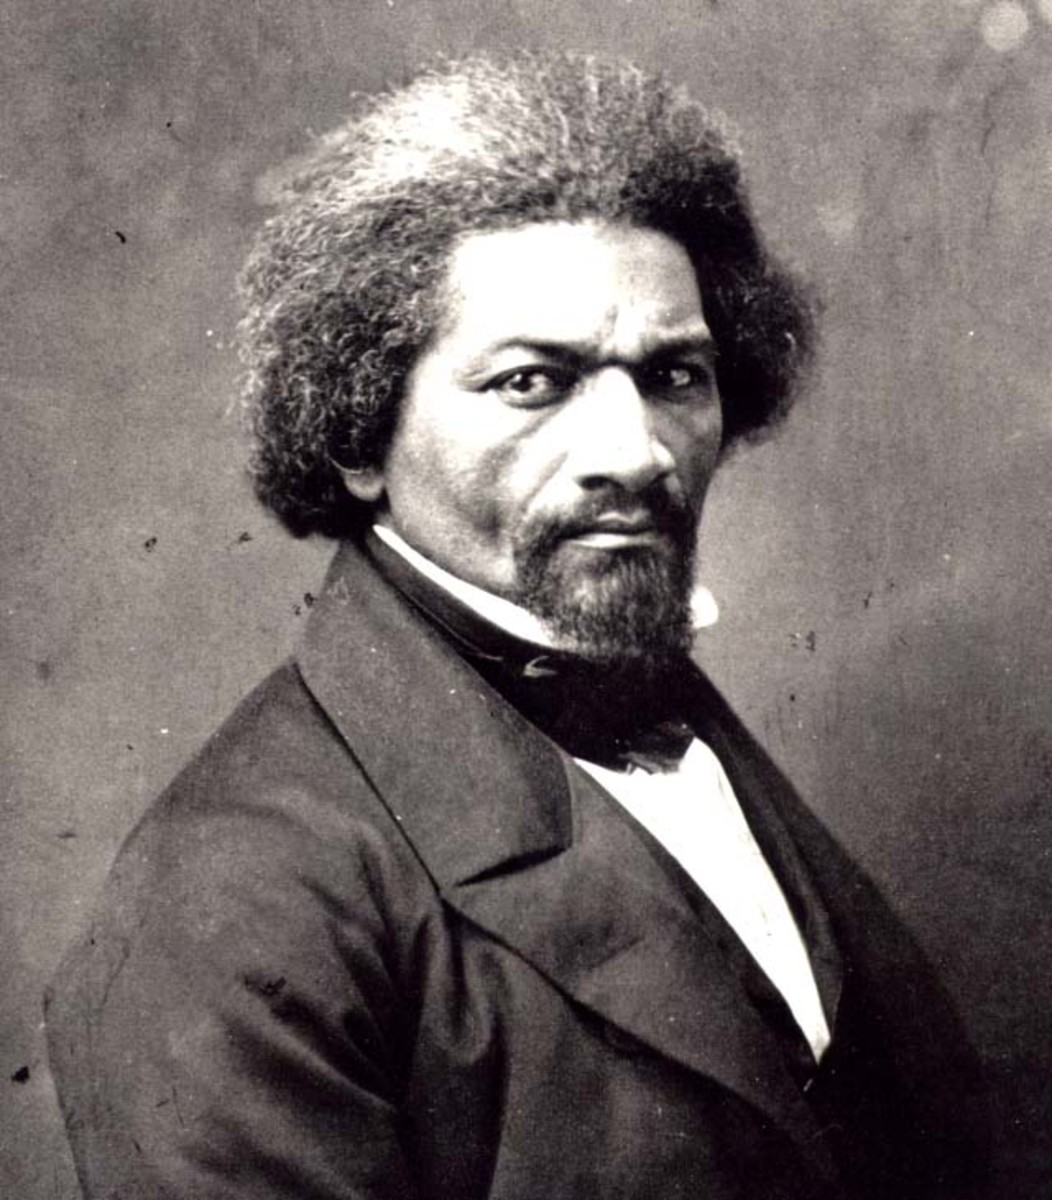 The Dred Scott Case Analyzed by Frederick Douglas